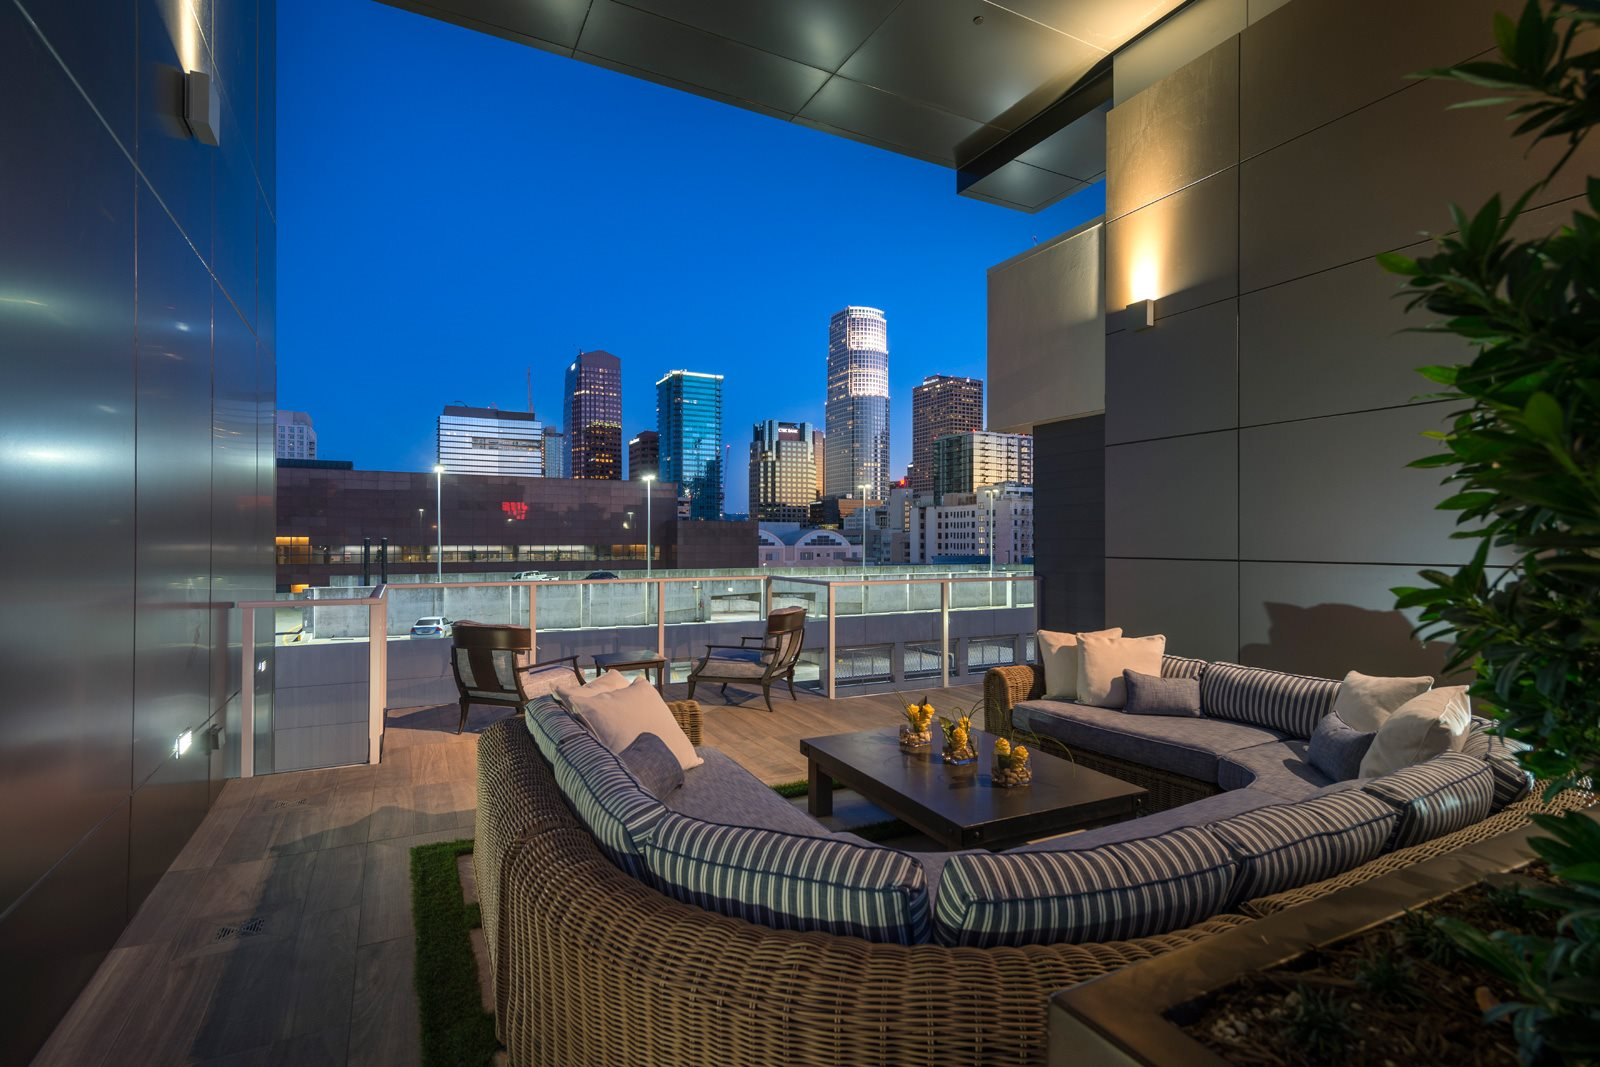 Beautiful Views from Outdoor Lounge at Olympic by Windsor, 936 S. Olive St, Los Angeles